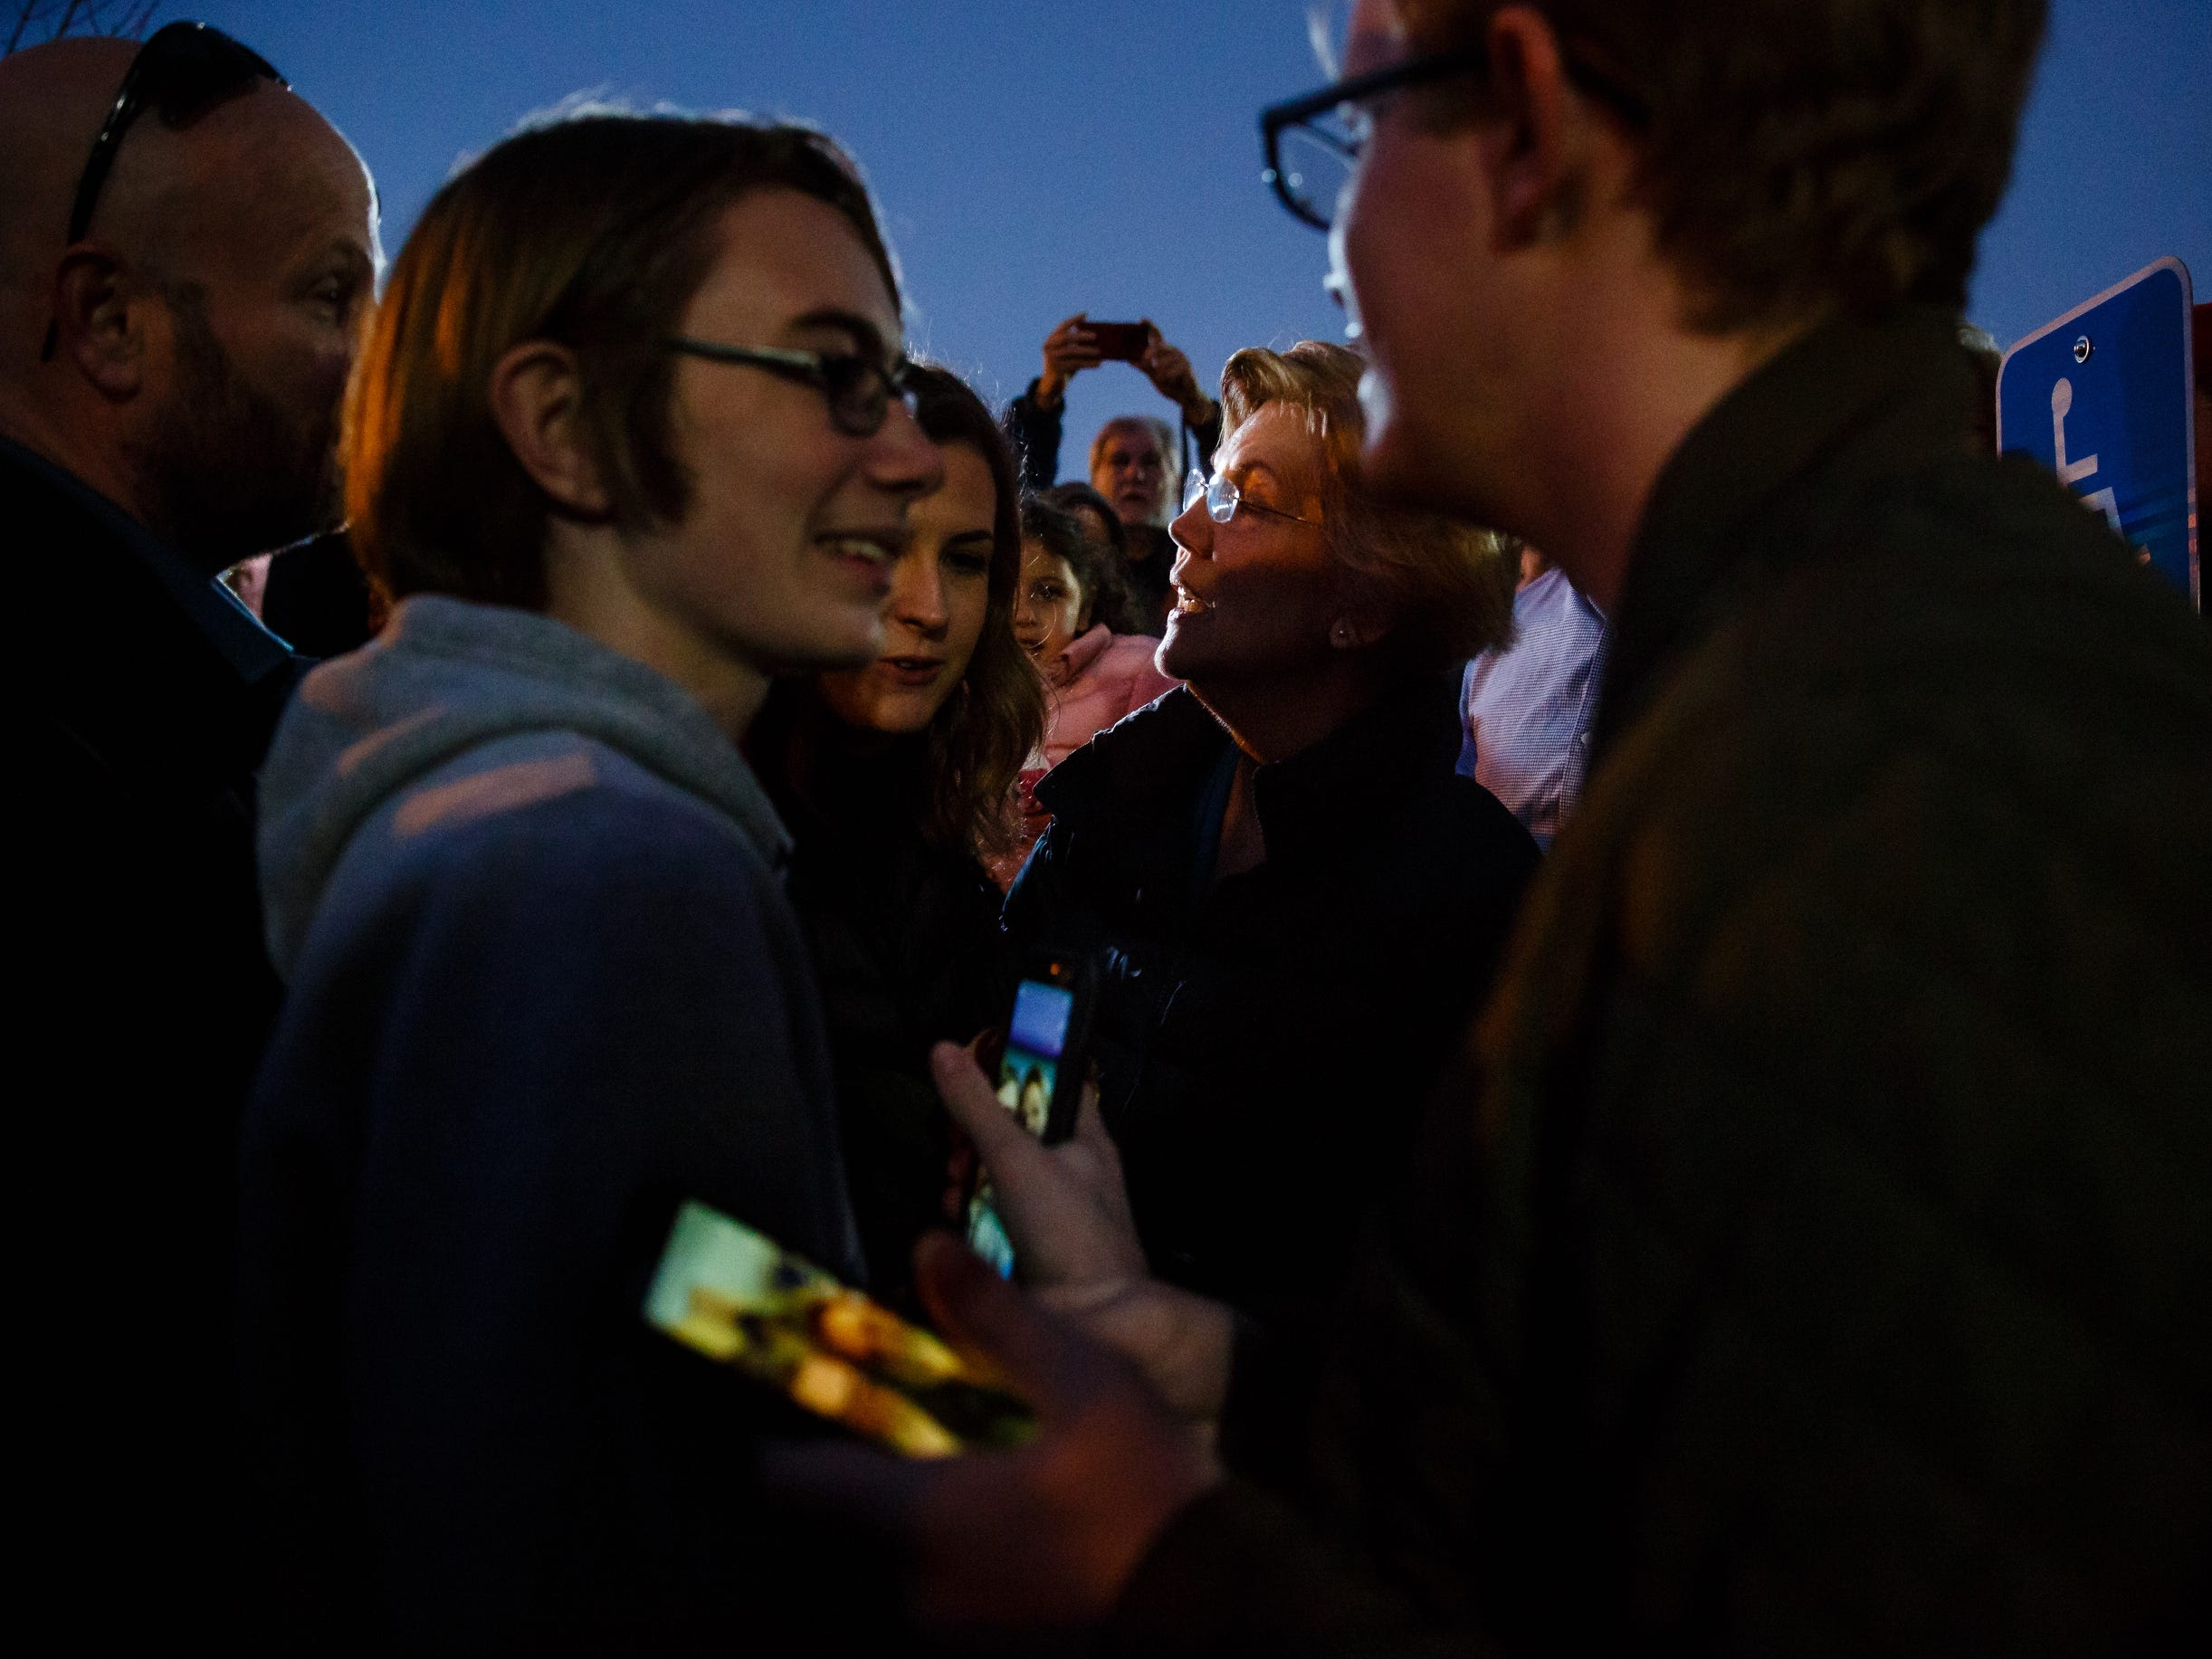 Sen. Elizabeth Warren mingles with the overflow crowd during an event on her first trip through Iowa as a possible 2020 presidential candidate on Friday, Jan. 4, 2019, in Council Bluffs.